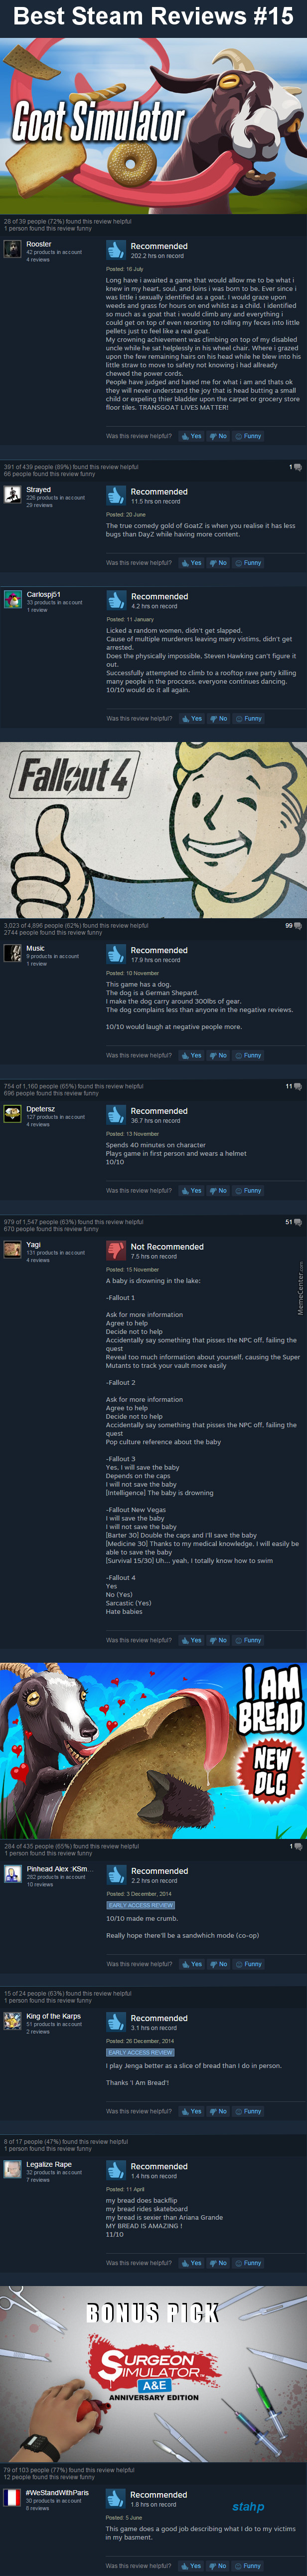 Best Steam Reviews #15 - The One With Fallout 4 In It